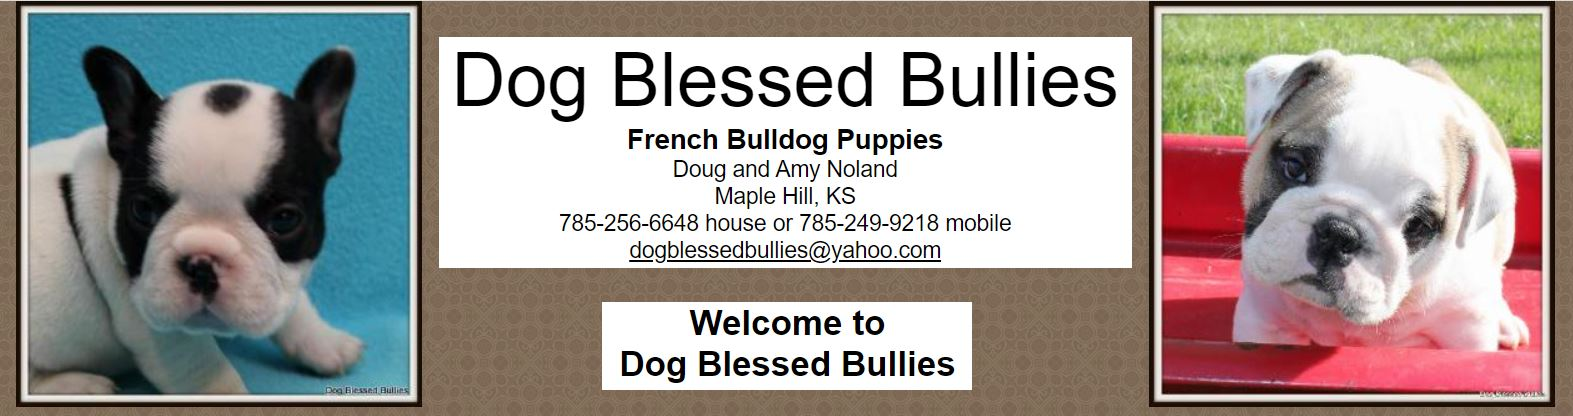 Dog Blessed Bullies